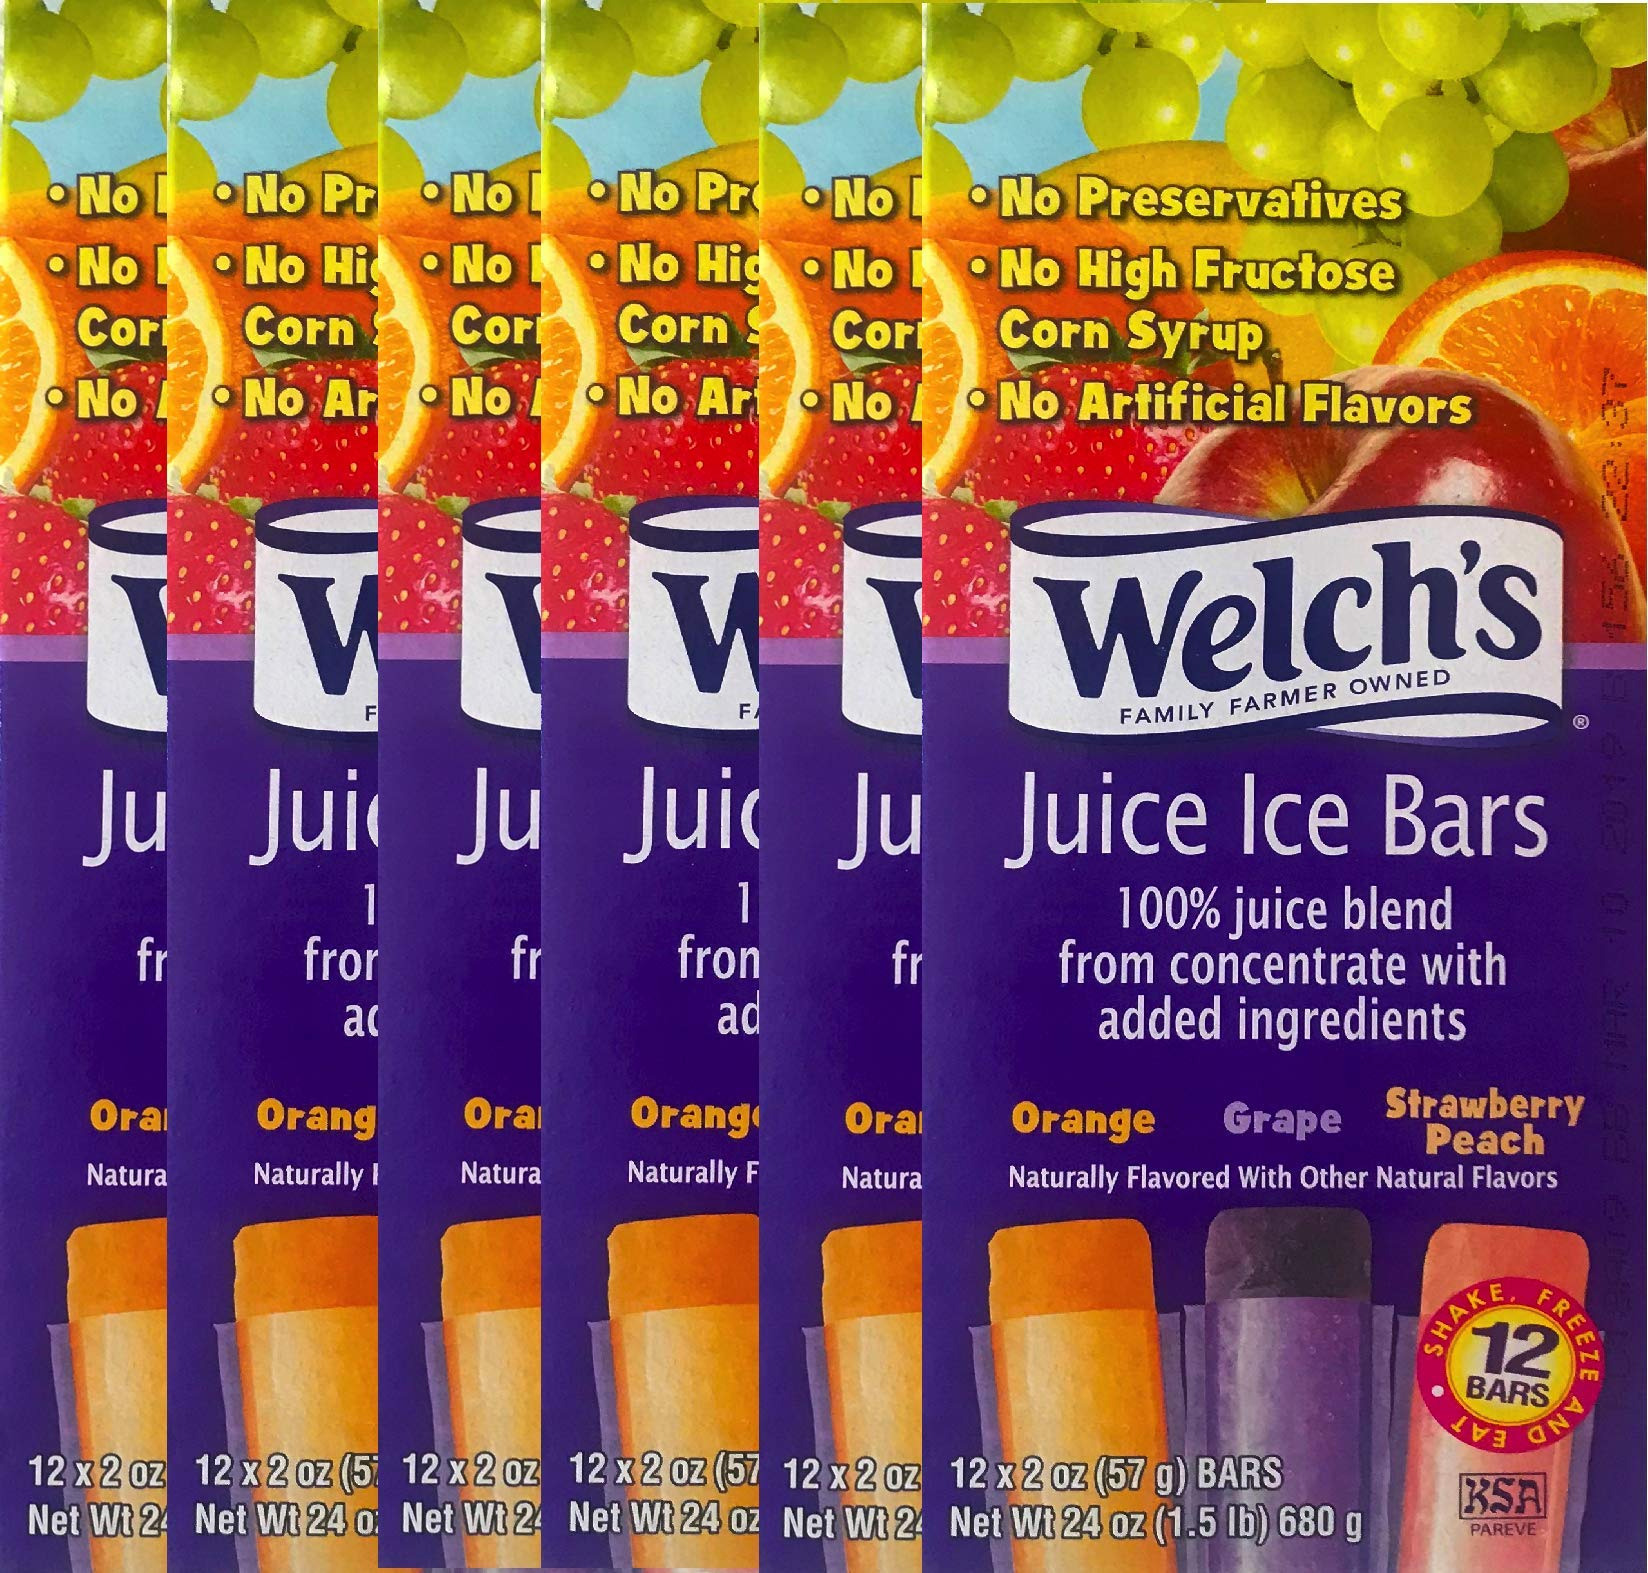 NEW Welch's Freezer Pops Made With Real Fruit Juice Grape, Strawberry Peach & Cherry Flavored Net Wt 24 Oz (6)